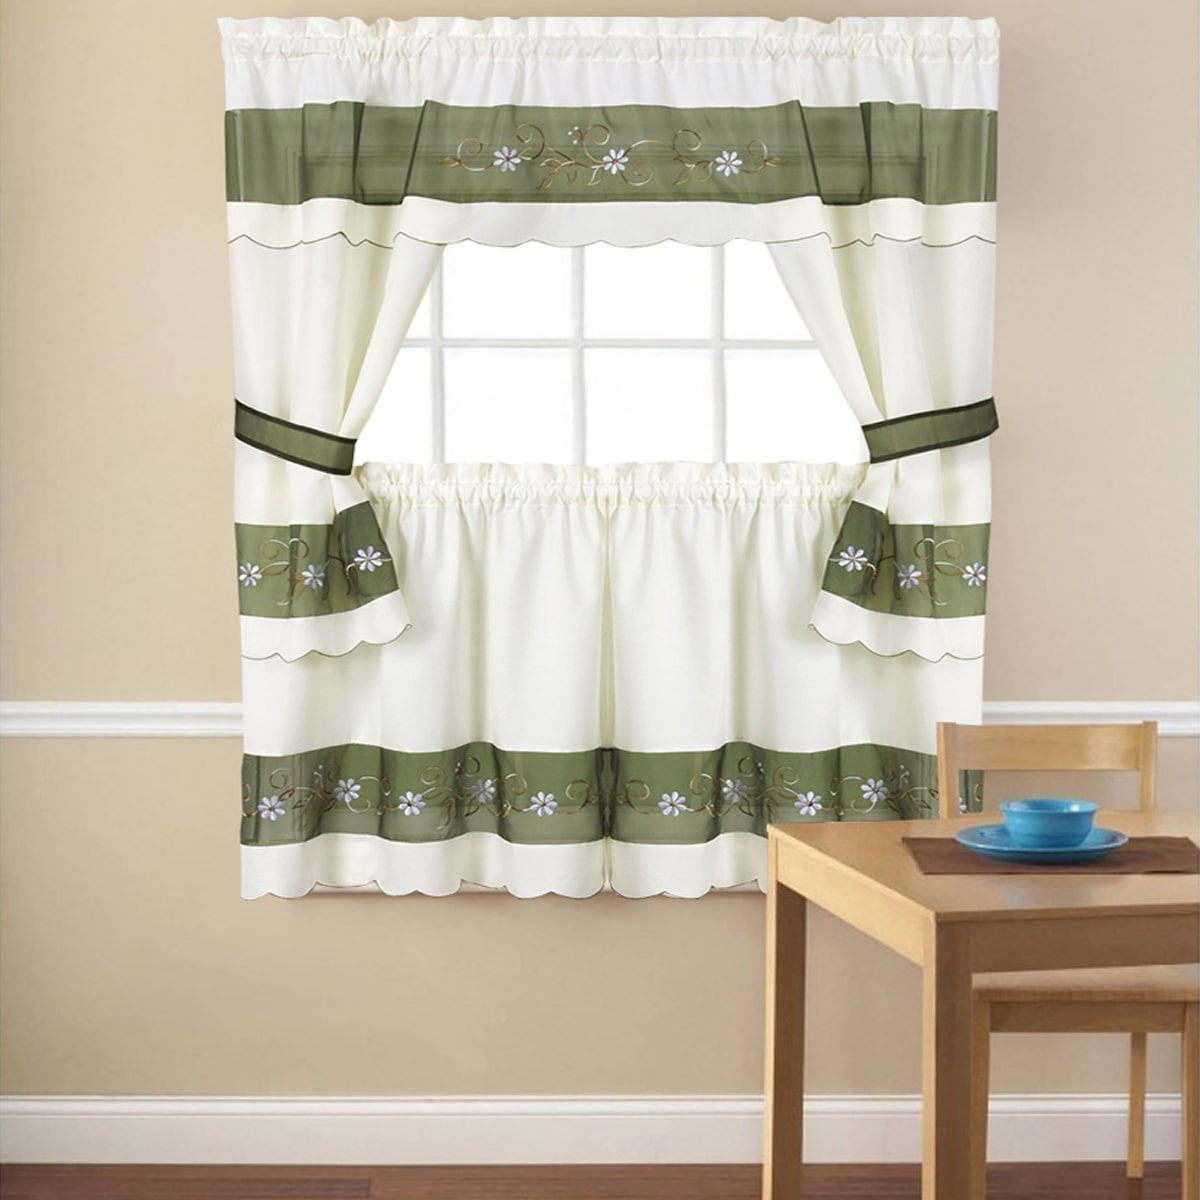 "Embroidered Floral 5 Piece Kitchen Curtain Set (58""x24 In Most Up To Date Chocolate 5 Piece Curtain Tier And Swag Sets (Gallery 16 of 20)"